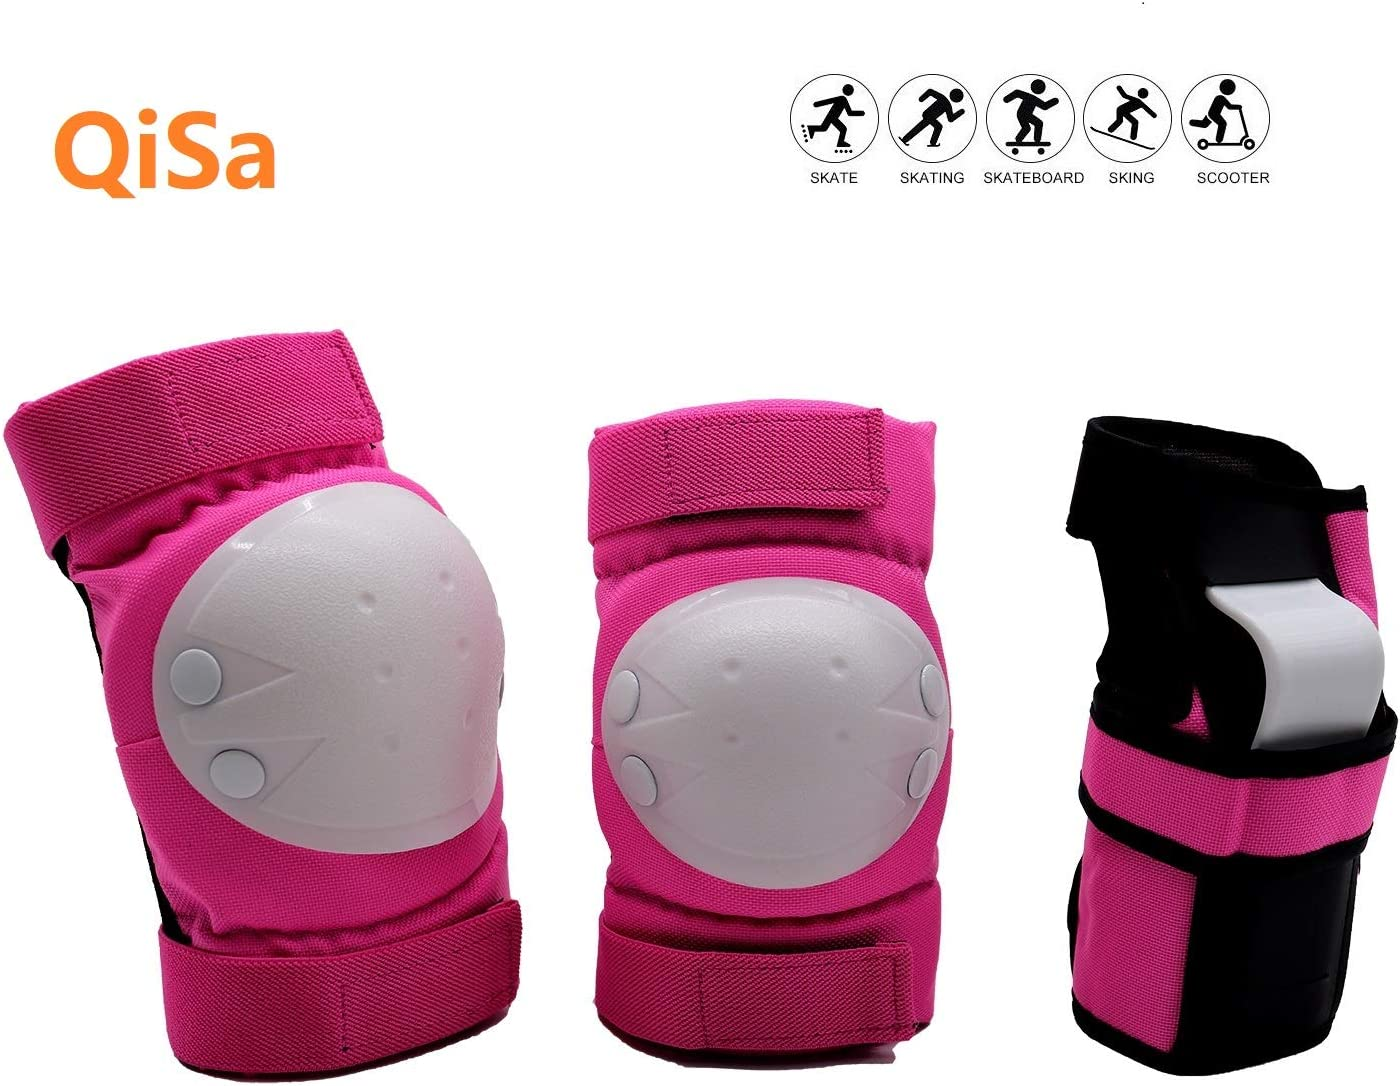 QiSa Kids & Adults Knee and Elbow Pads with Wrist Guards Protective Gear Set : Sports & Outdoors